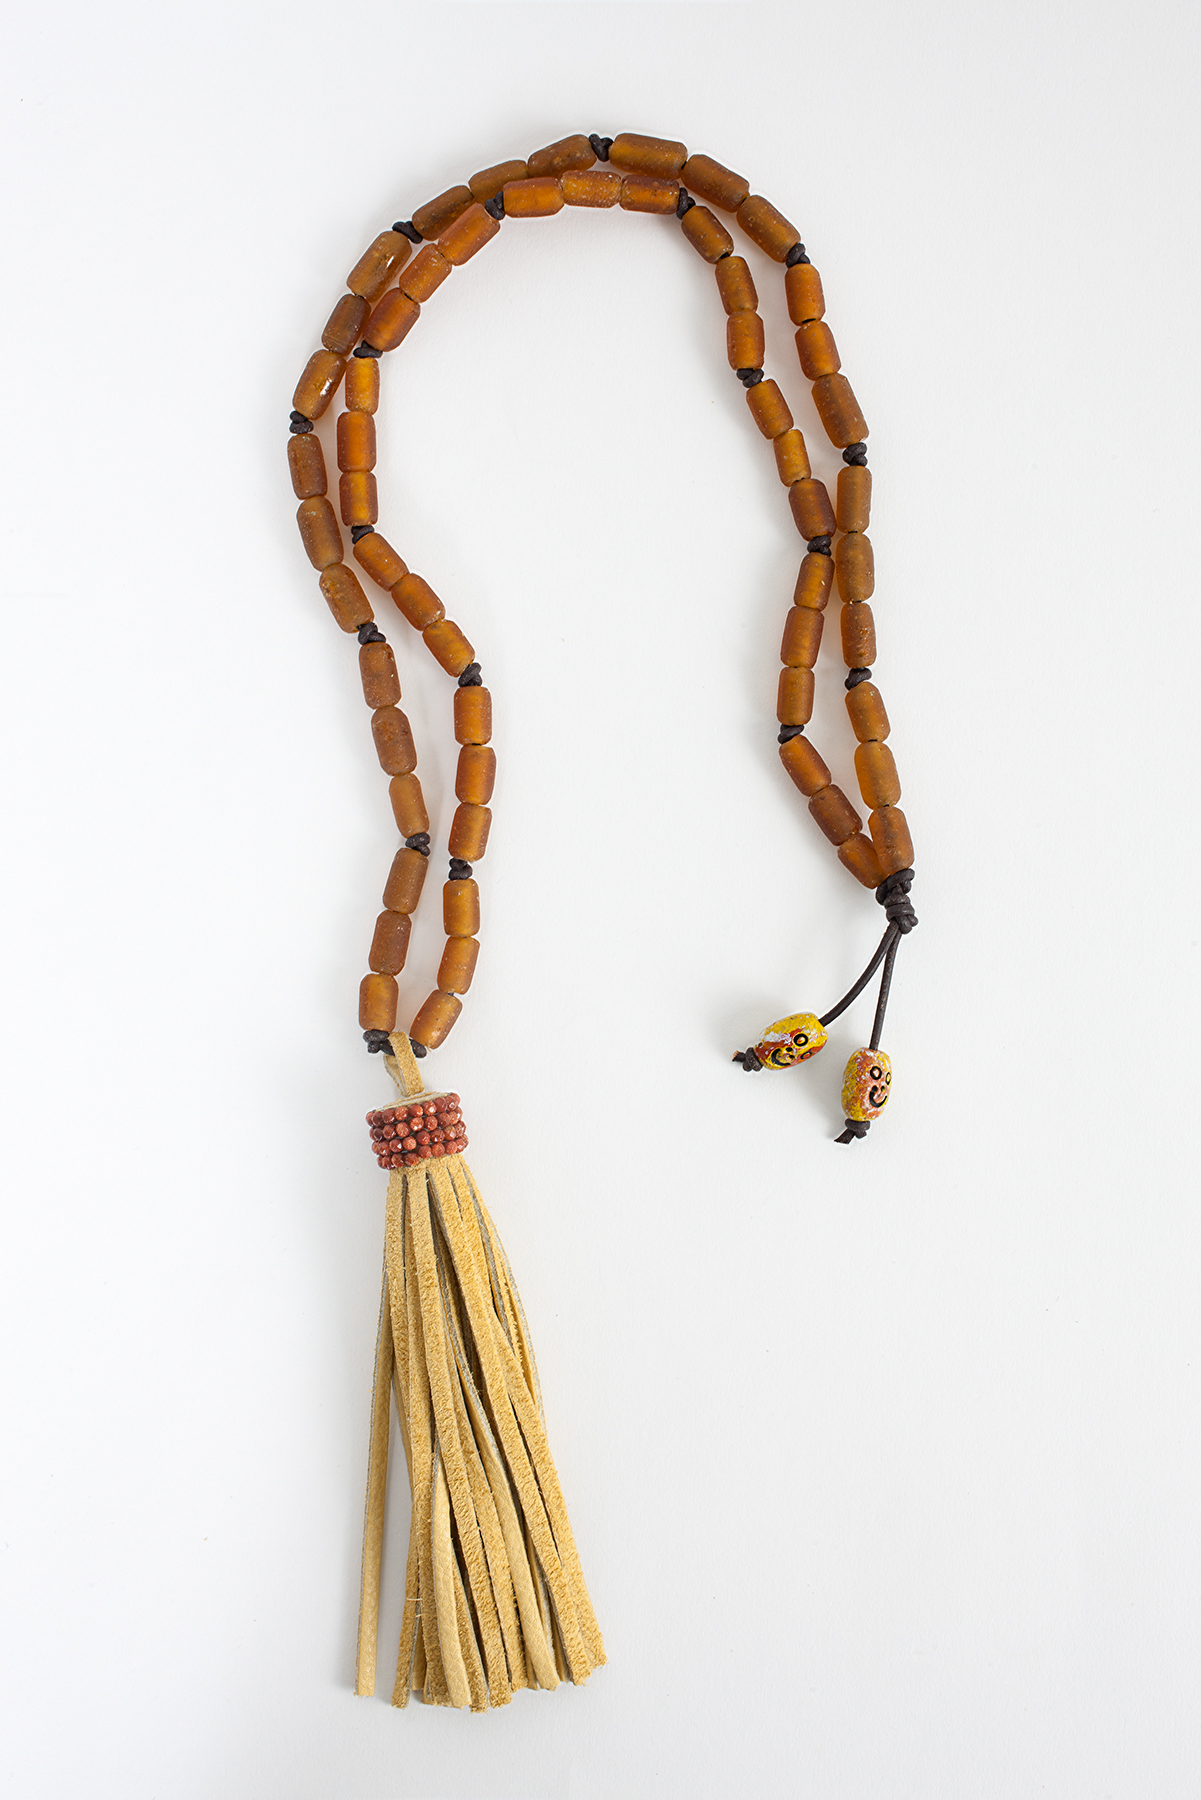 BOHO girls must have a suede tassel necklace like the Tamara necklace shown above. This features our signature woven beading and works well with the warm color palette embraced by all those who call themselves BOHO.  All of the necklaces featured here are part of our newly launched FALL LEXIE COLLECTION. Click here to shop: www.myrnahalpern.com/shop